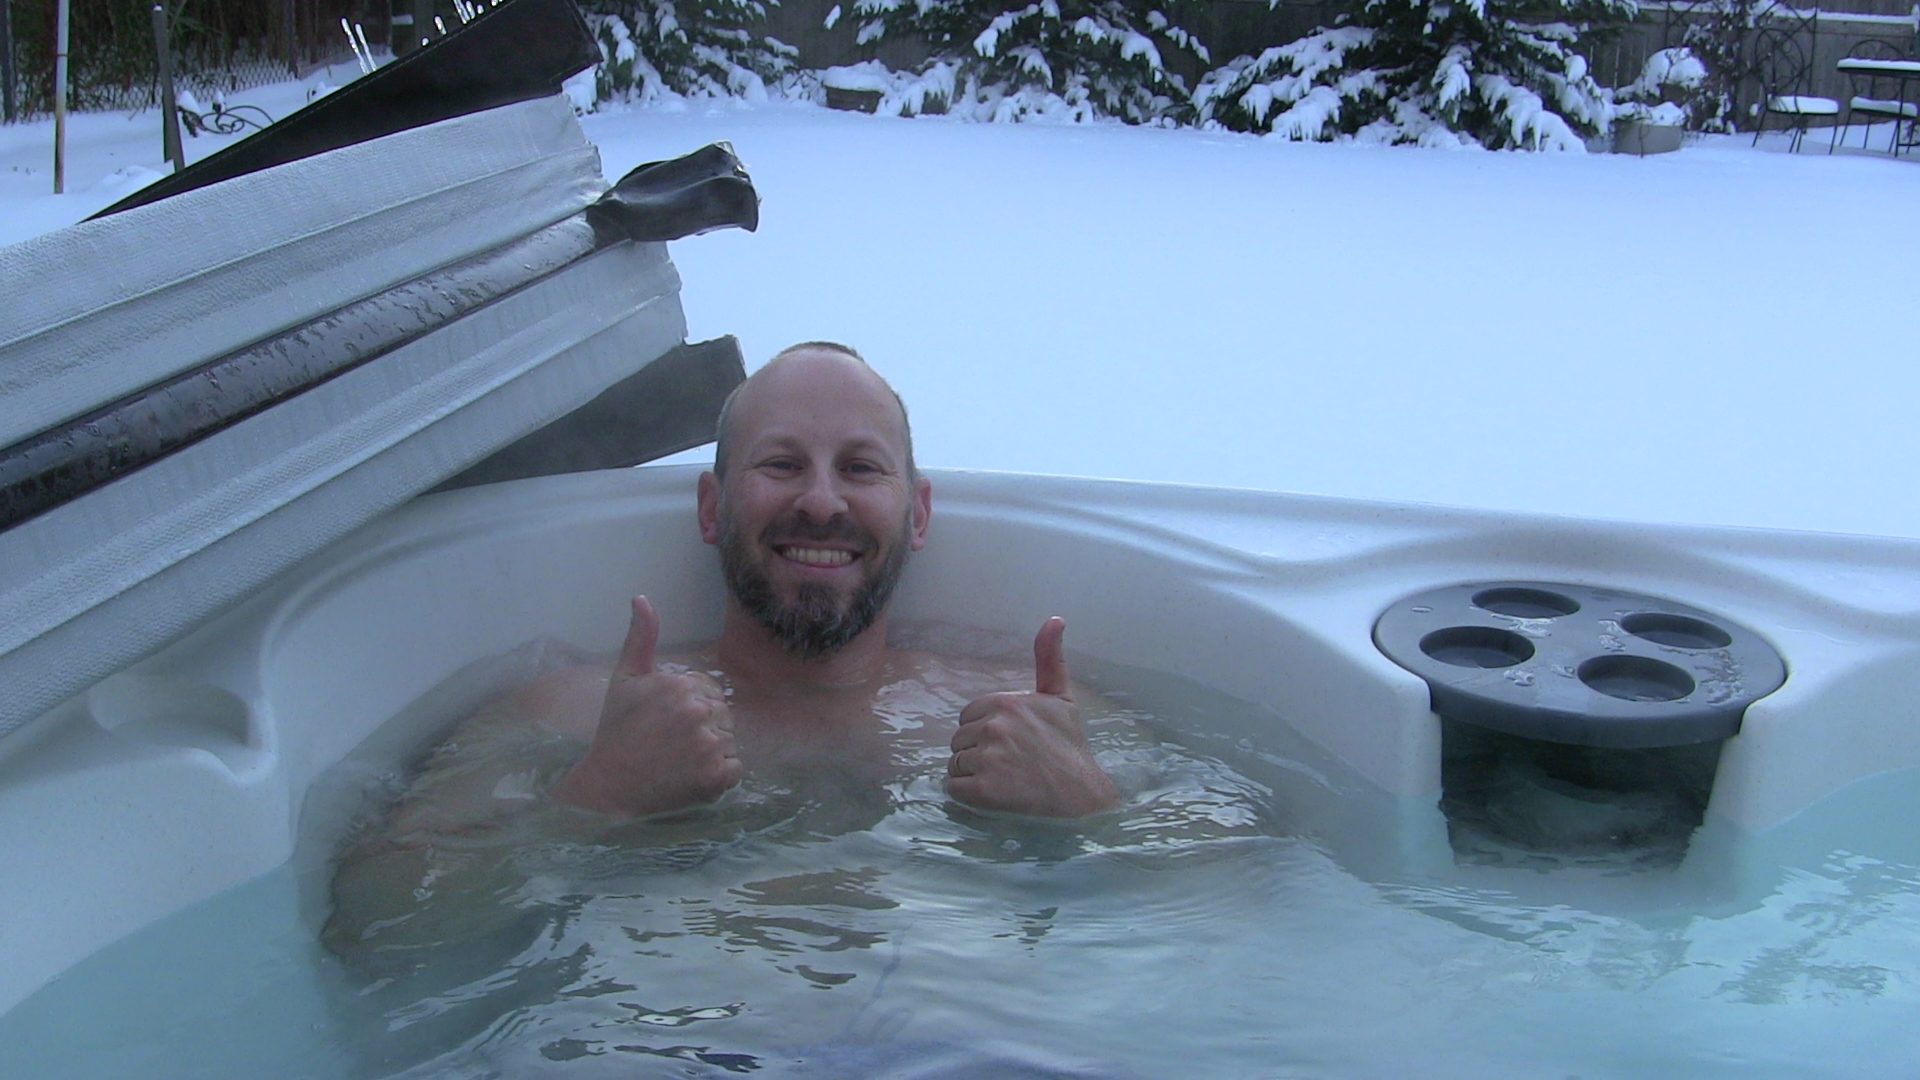 pools tubs garden spas home hot lifesmart tub reviews and